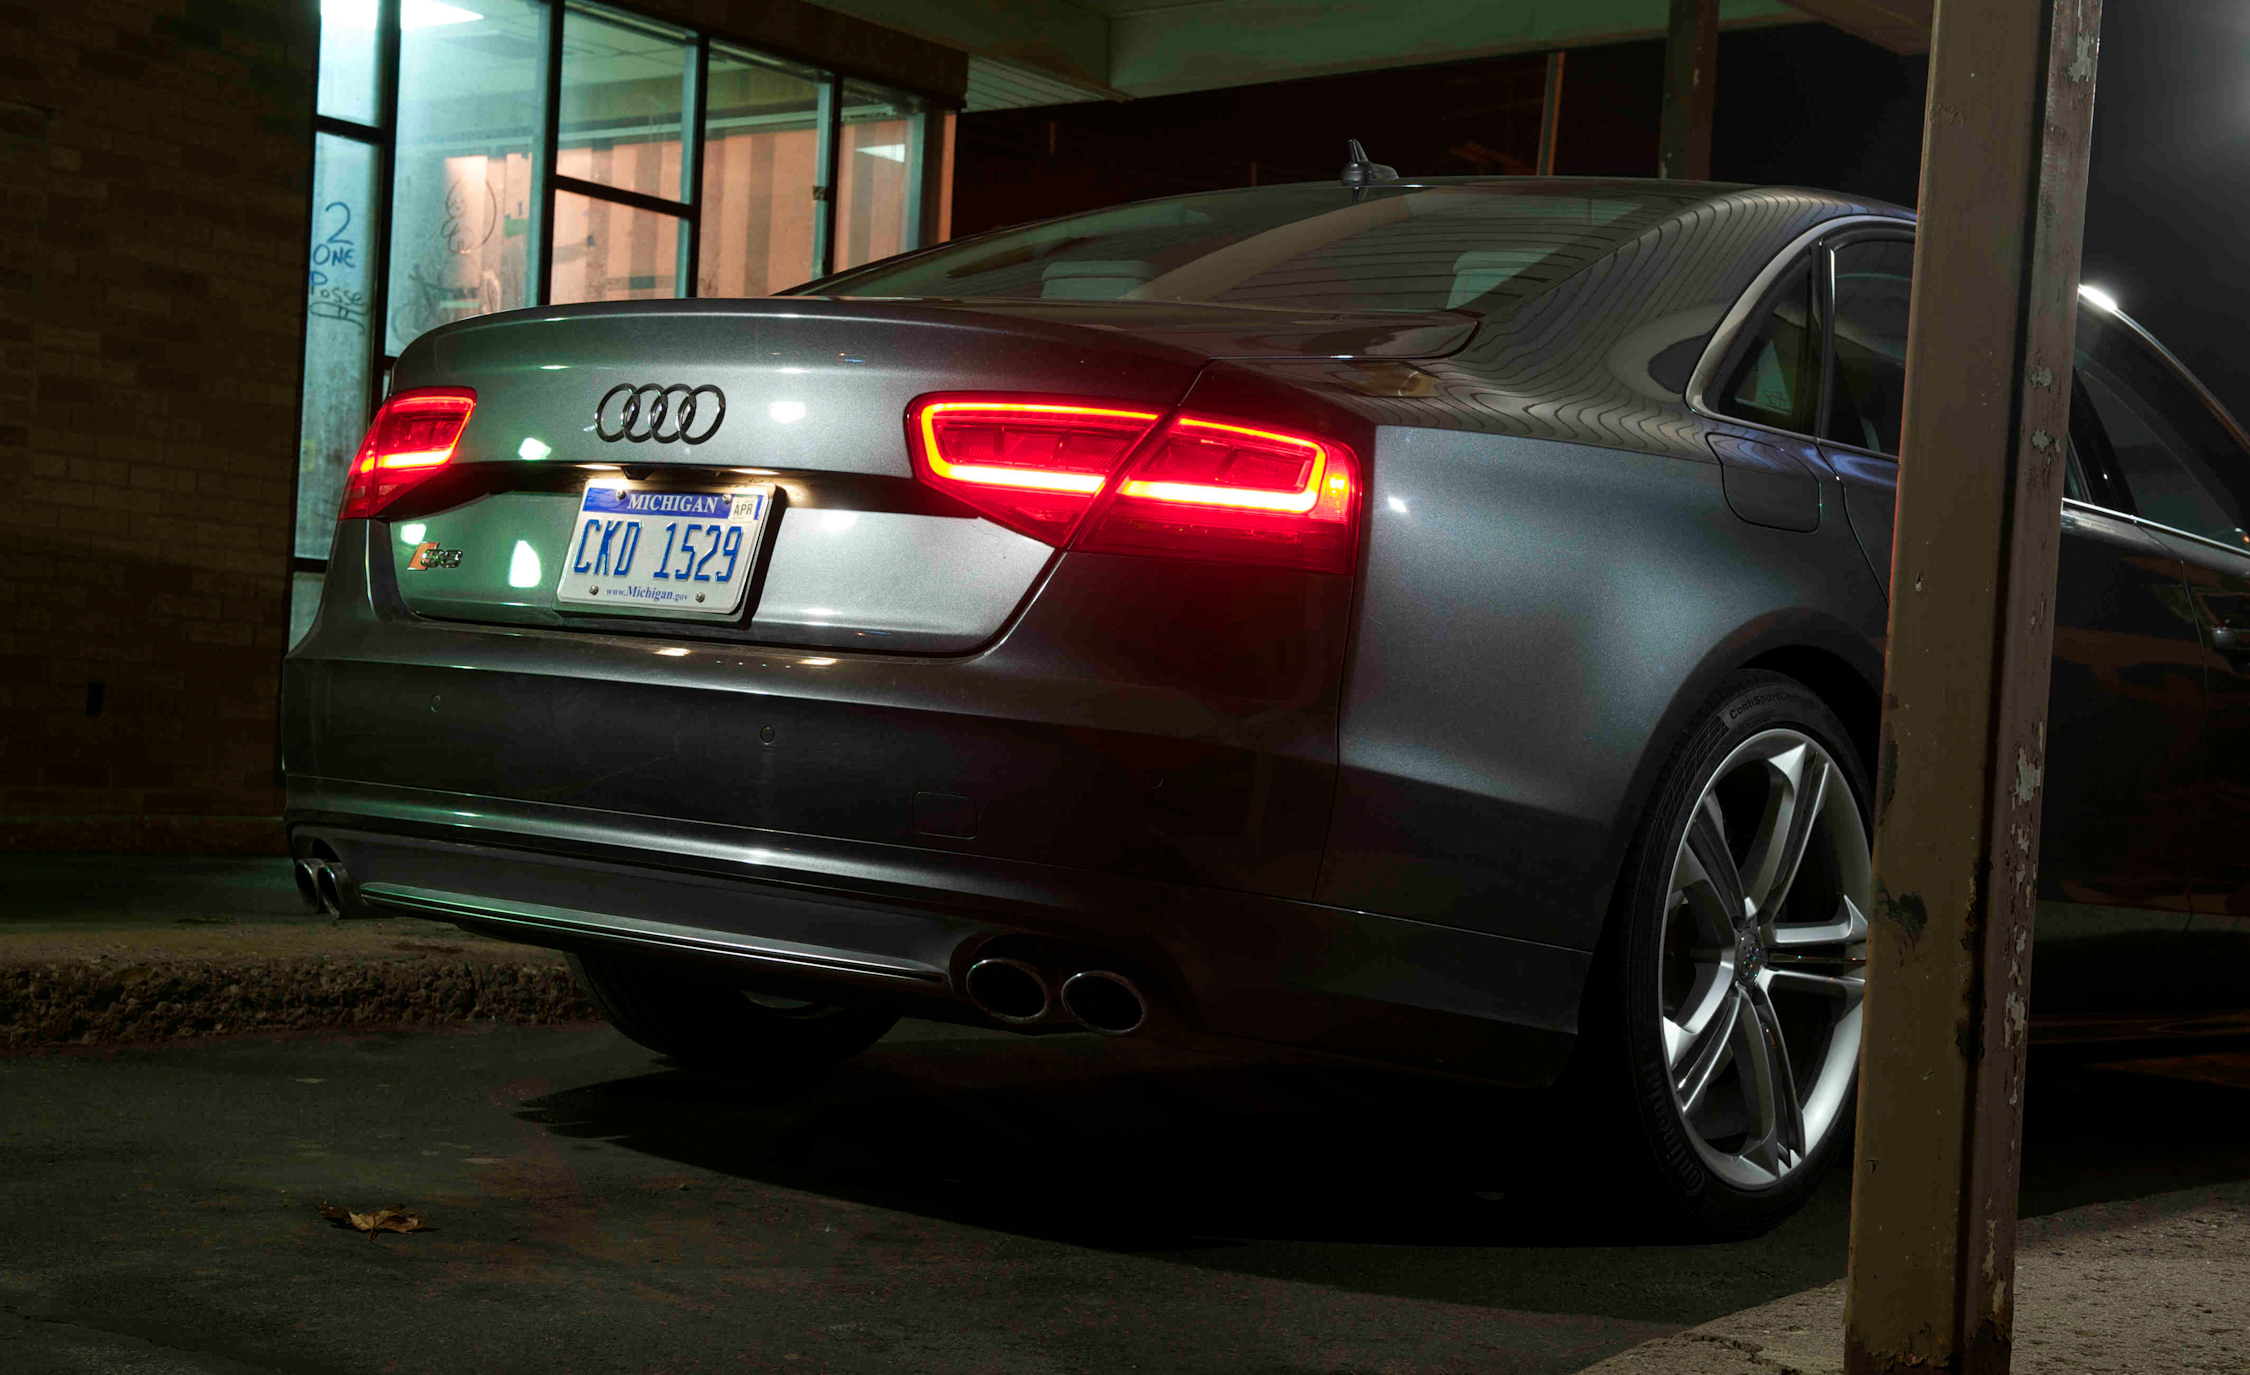 2013 Audi S8 Exterior Rear (View 25 of 25)